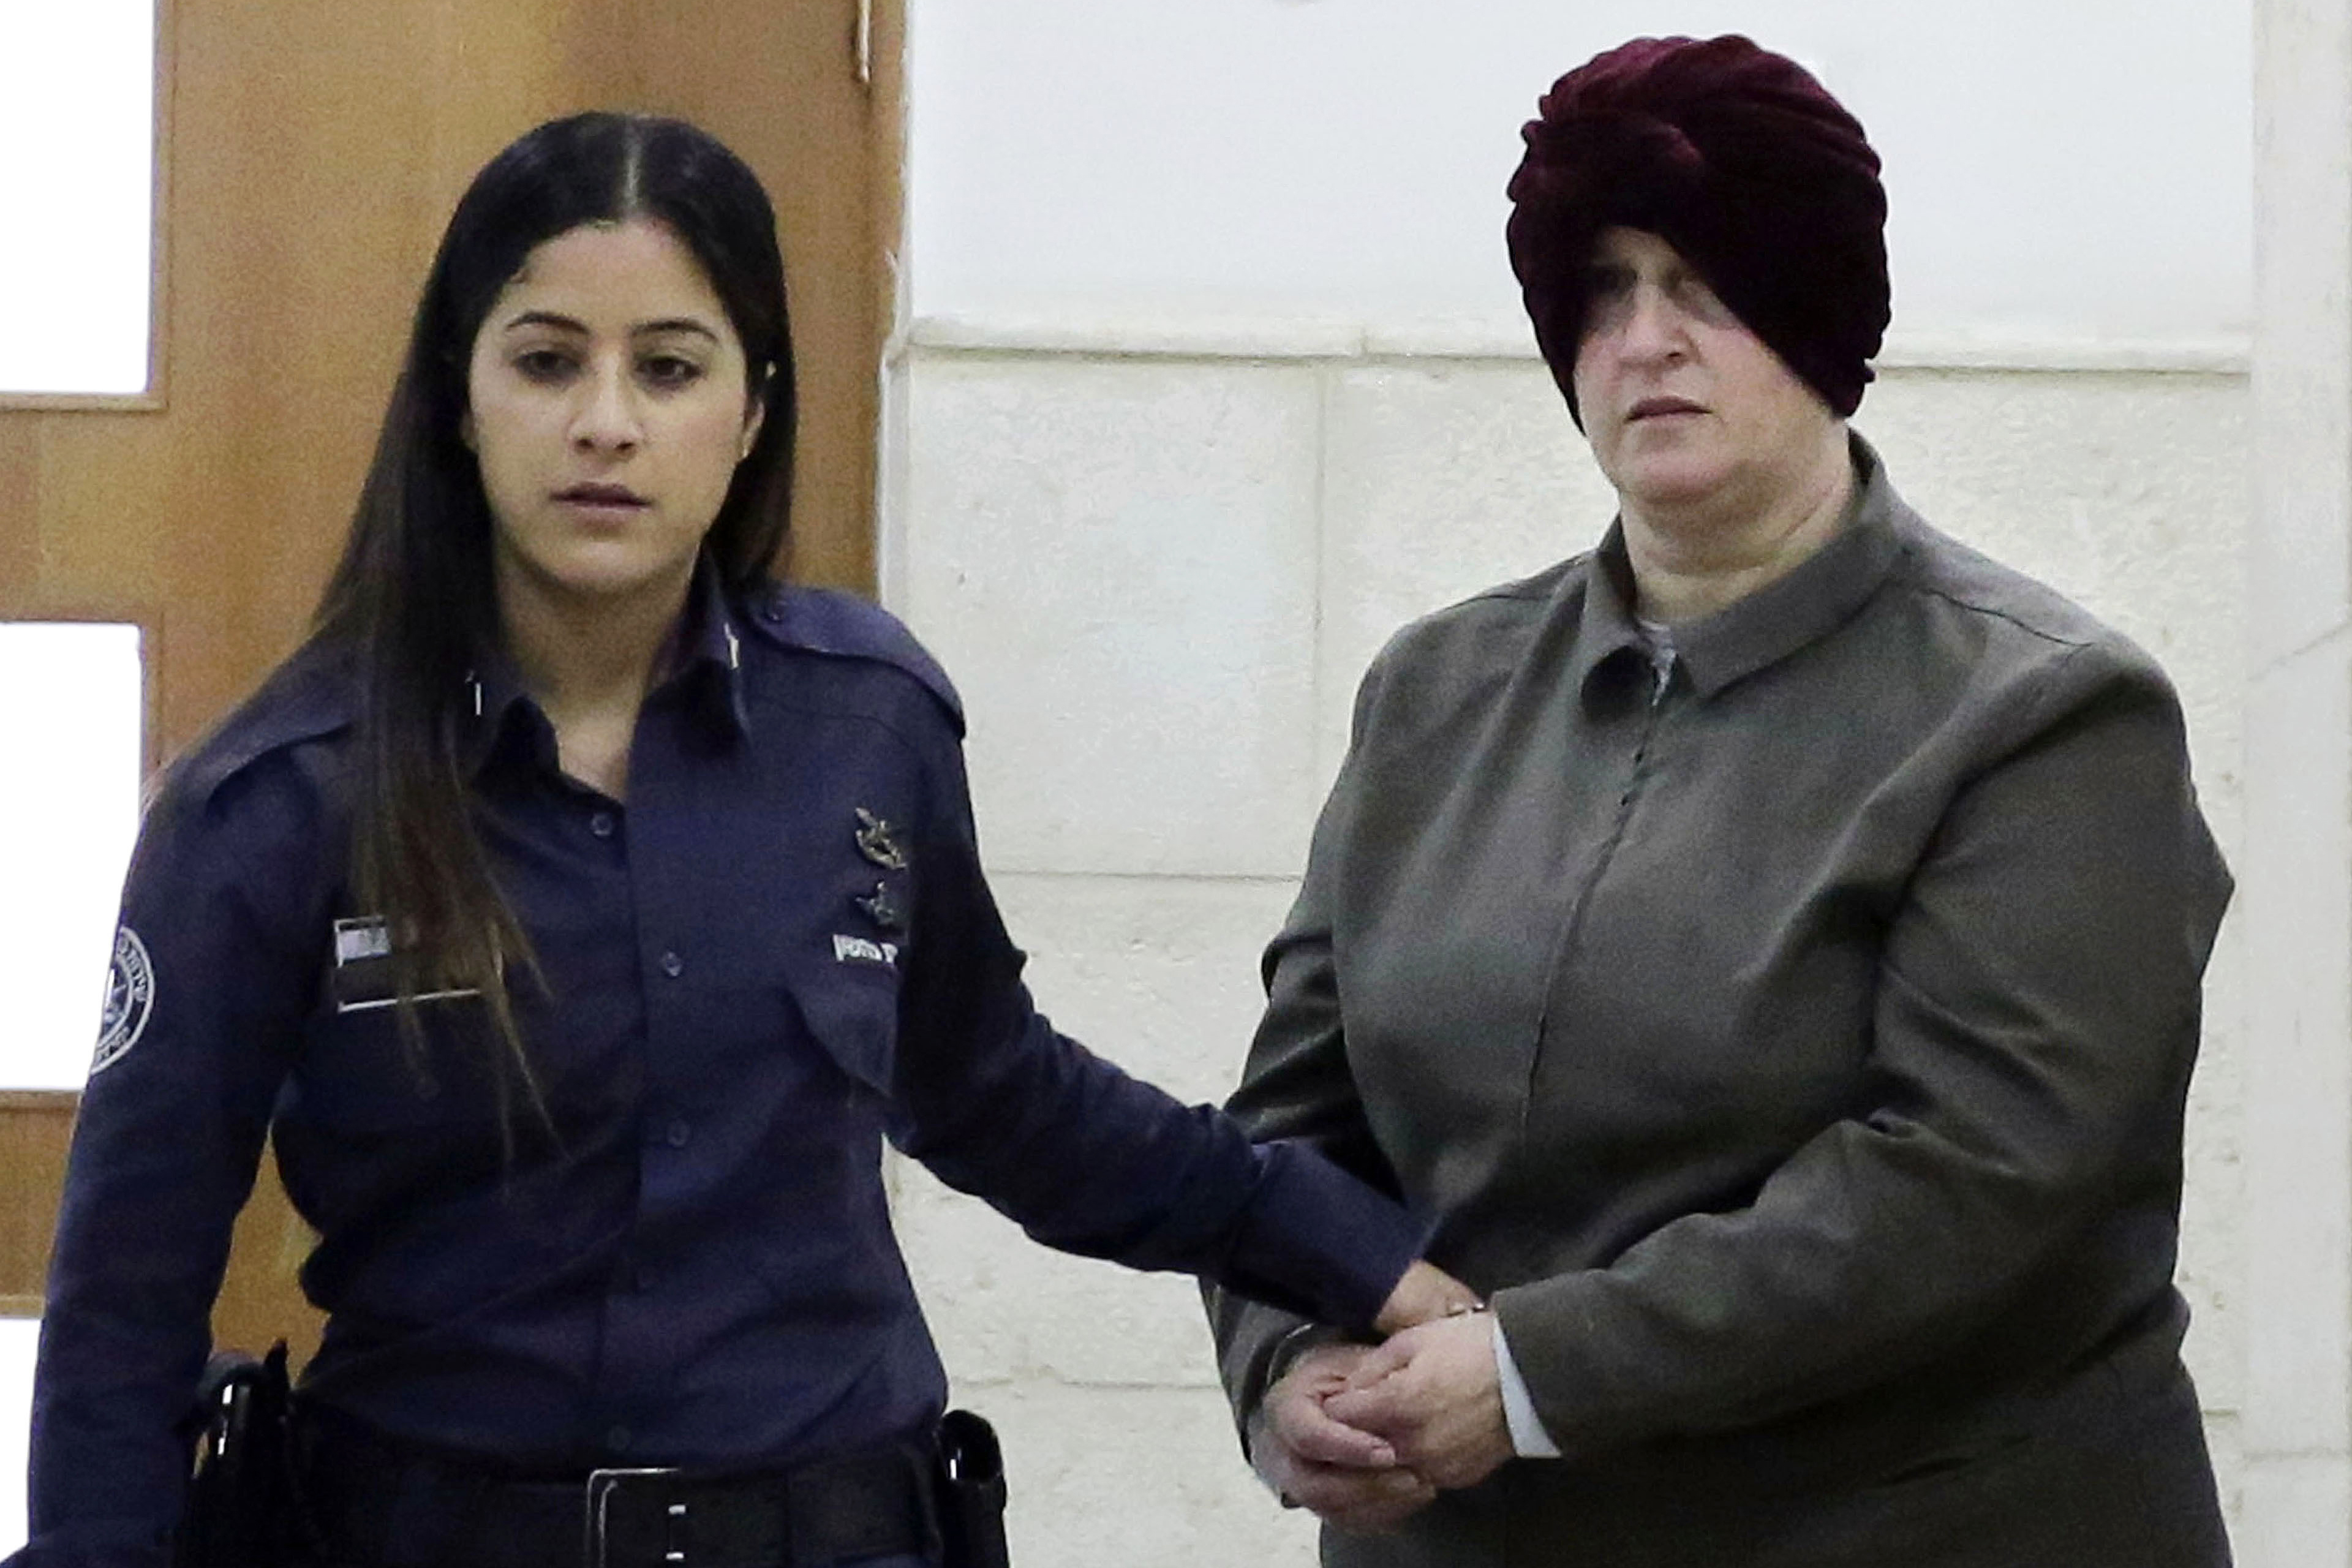 Drawn-out sex crimes case rattles Israel-Australia ties